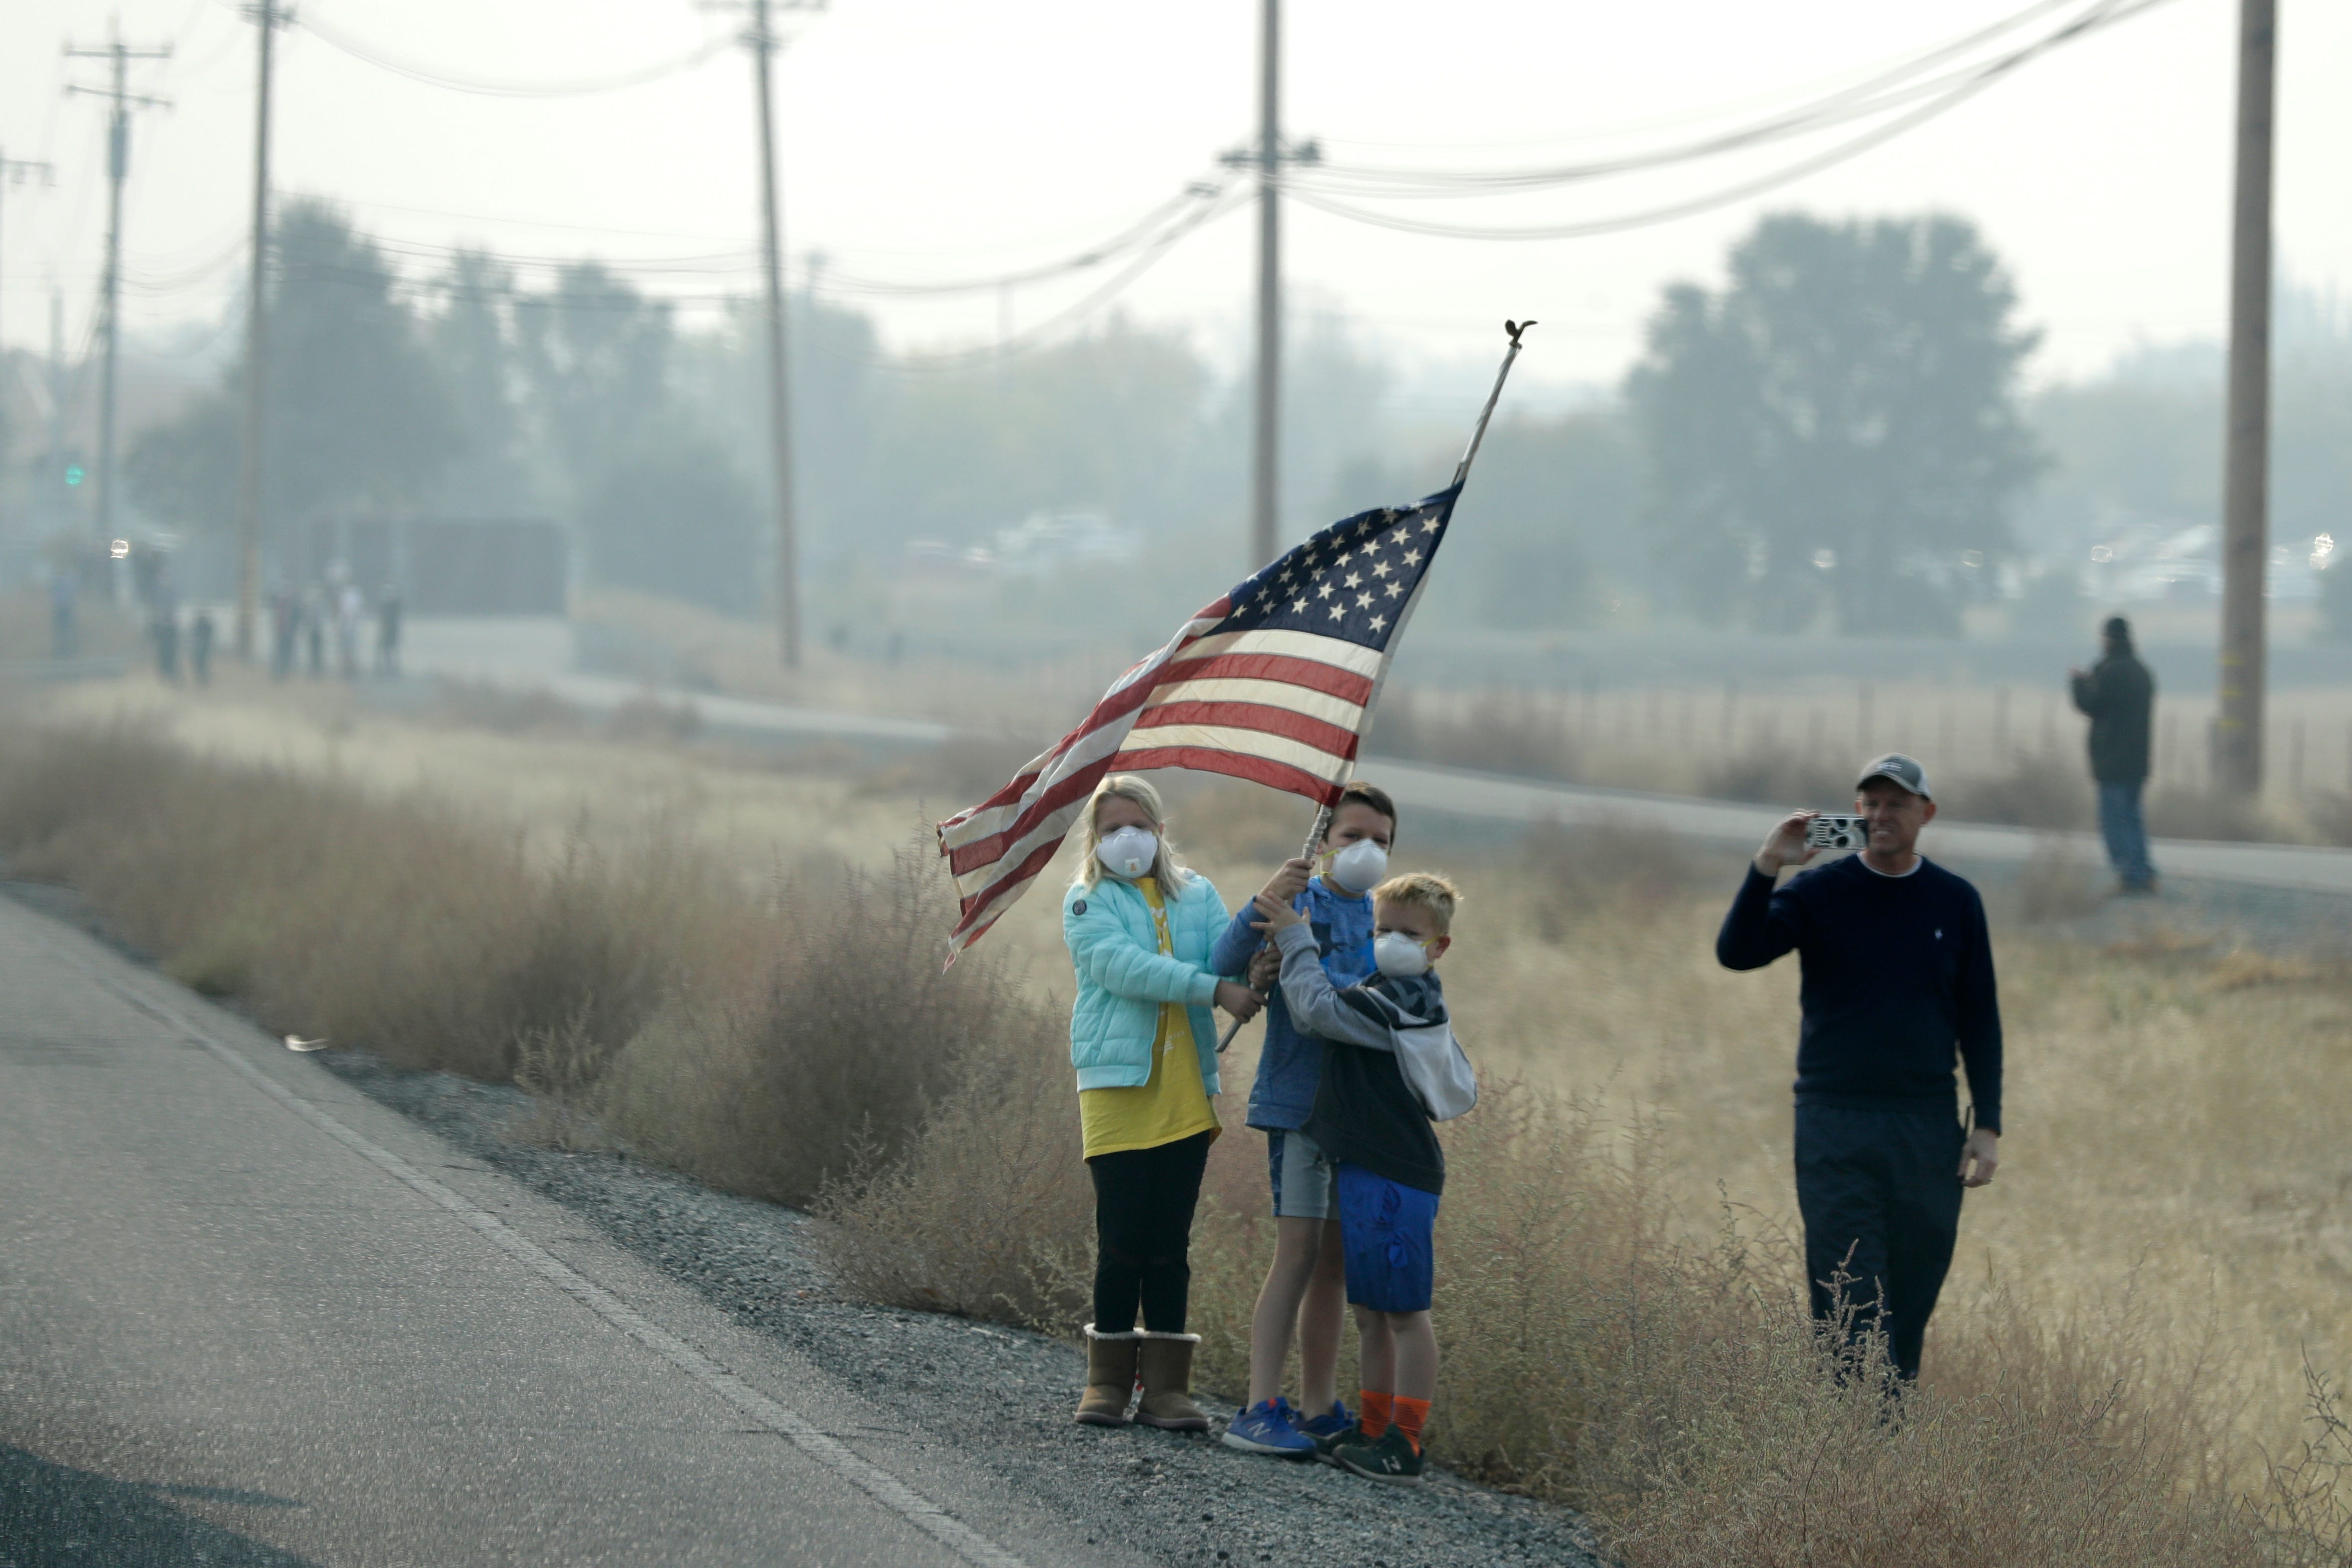 People stand on the side of the road holding an American flag as the motorcade of President Donald Trump drives through Chico, Calif., on a visit to areas affected by the wildfires, Saturday, Nov. 17, 2018.